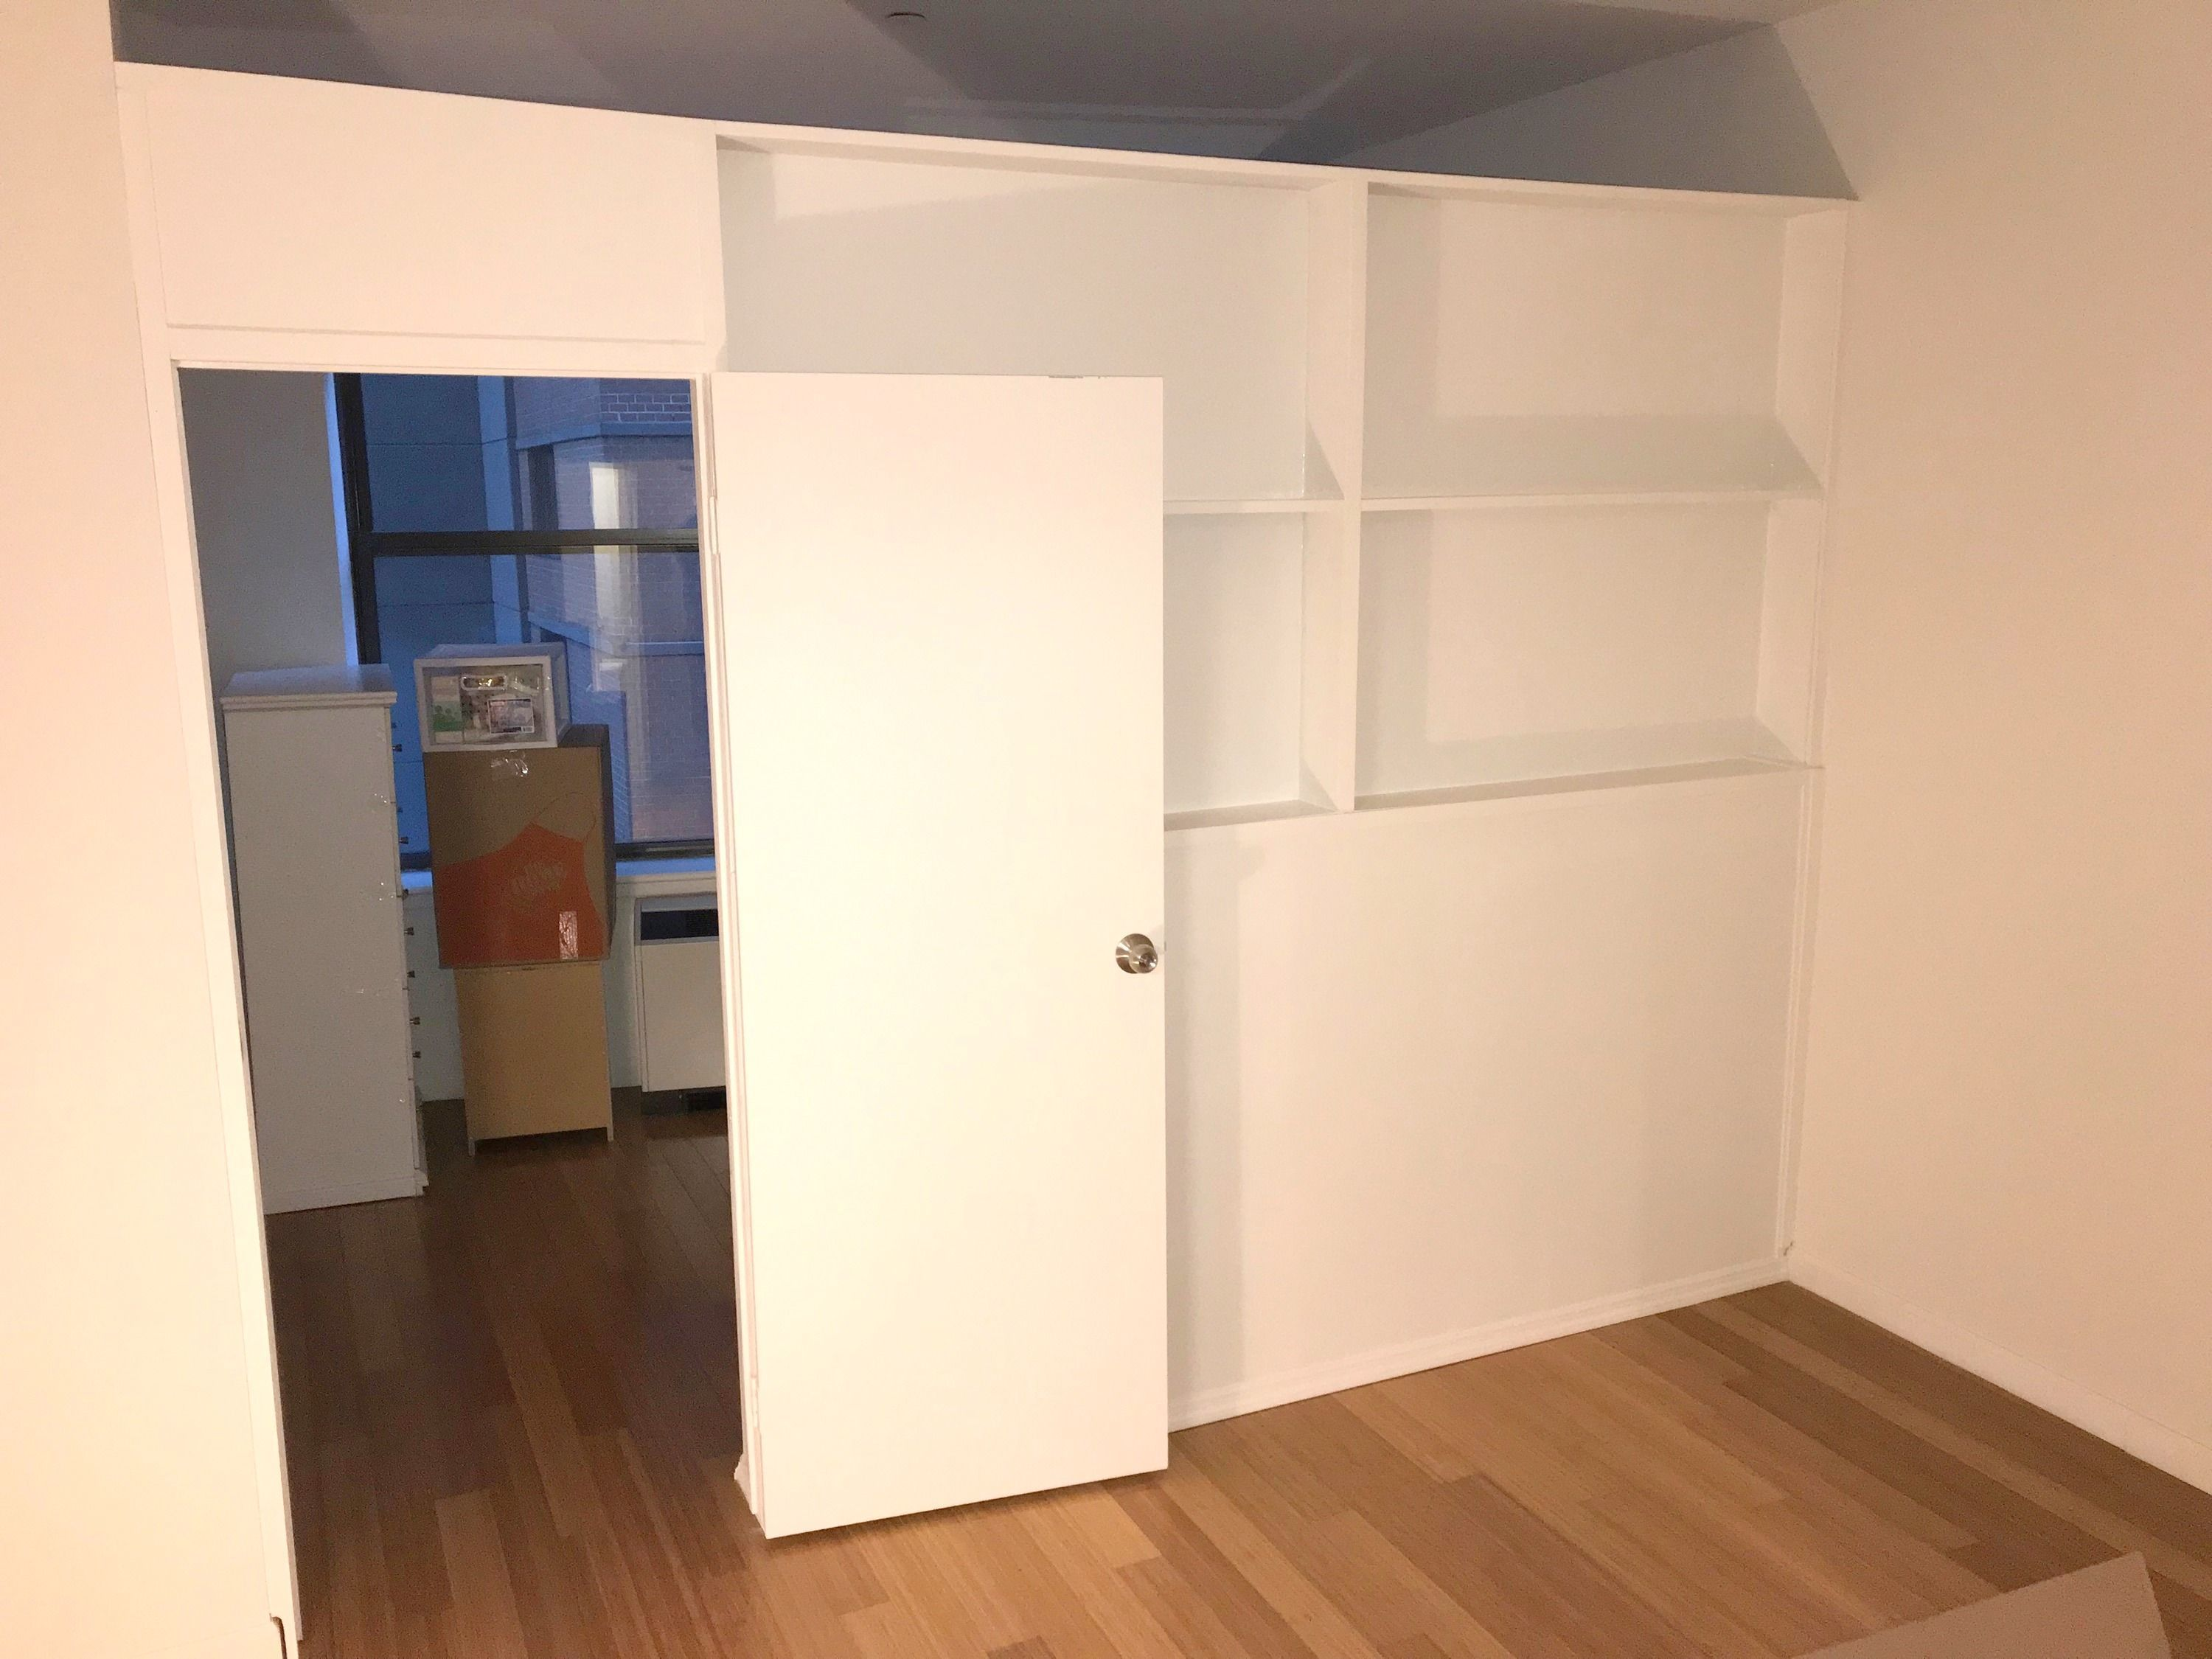 Custom Temporary Partition With Bookcase Call Us For All Your Custom Room Partition And Storage Wall Inquiries Bookcase Wall Diy Room Divider Bedroom Redesign